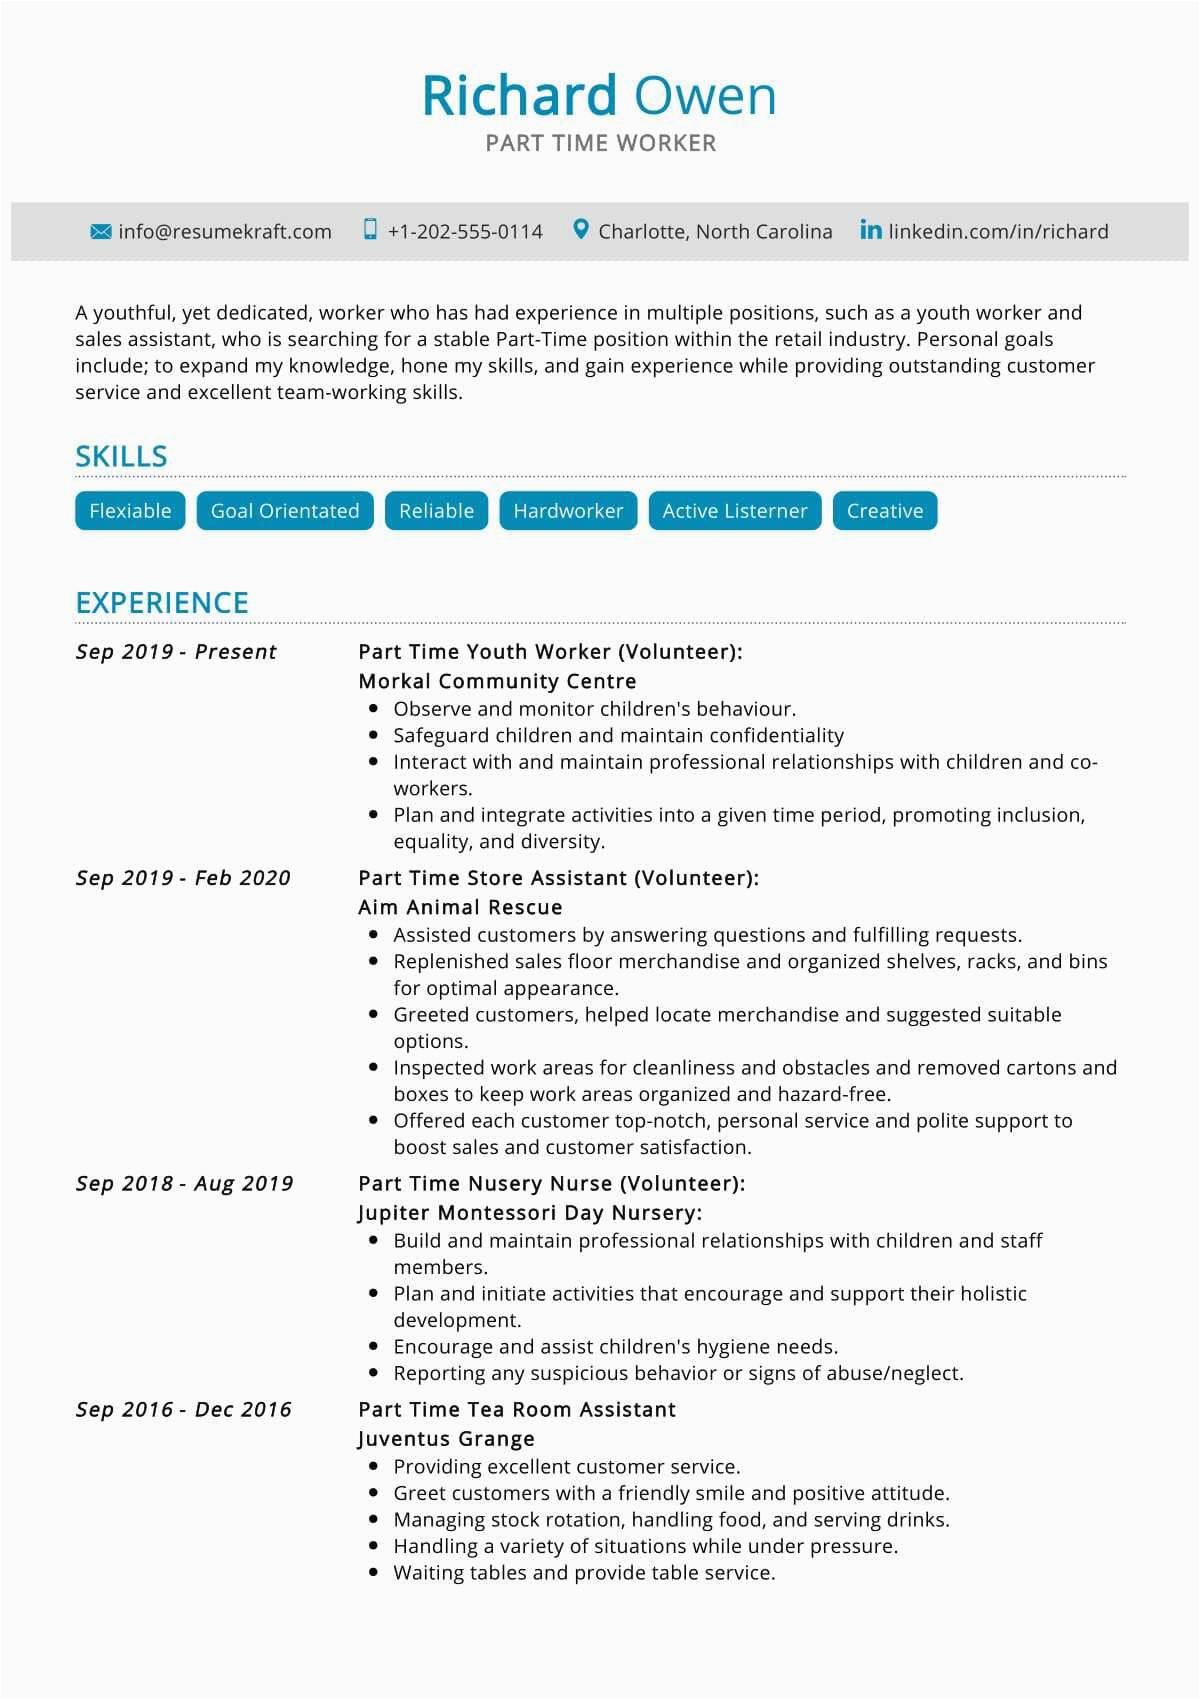 Sample Resume with Part Time Job Experience Part Time Job Resume Sample Resumekraft